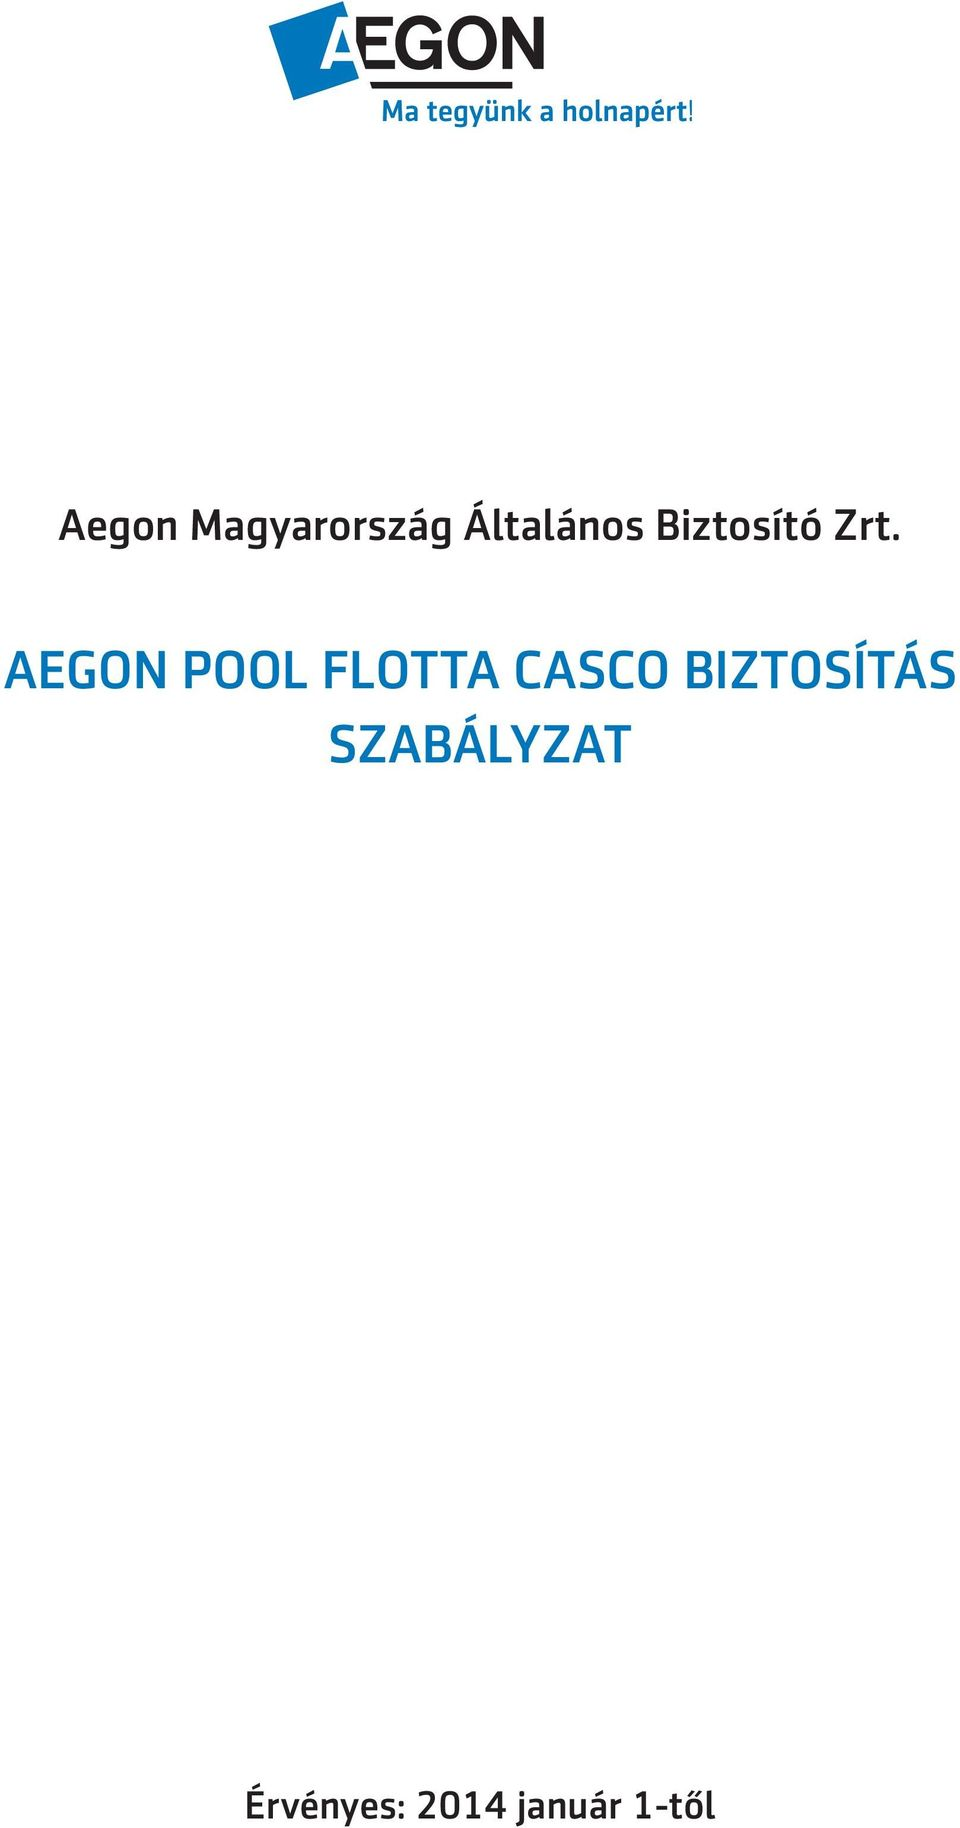 AEGON POOL FLOTTA CASCO